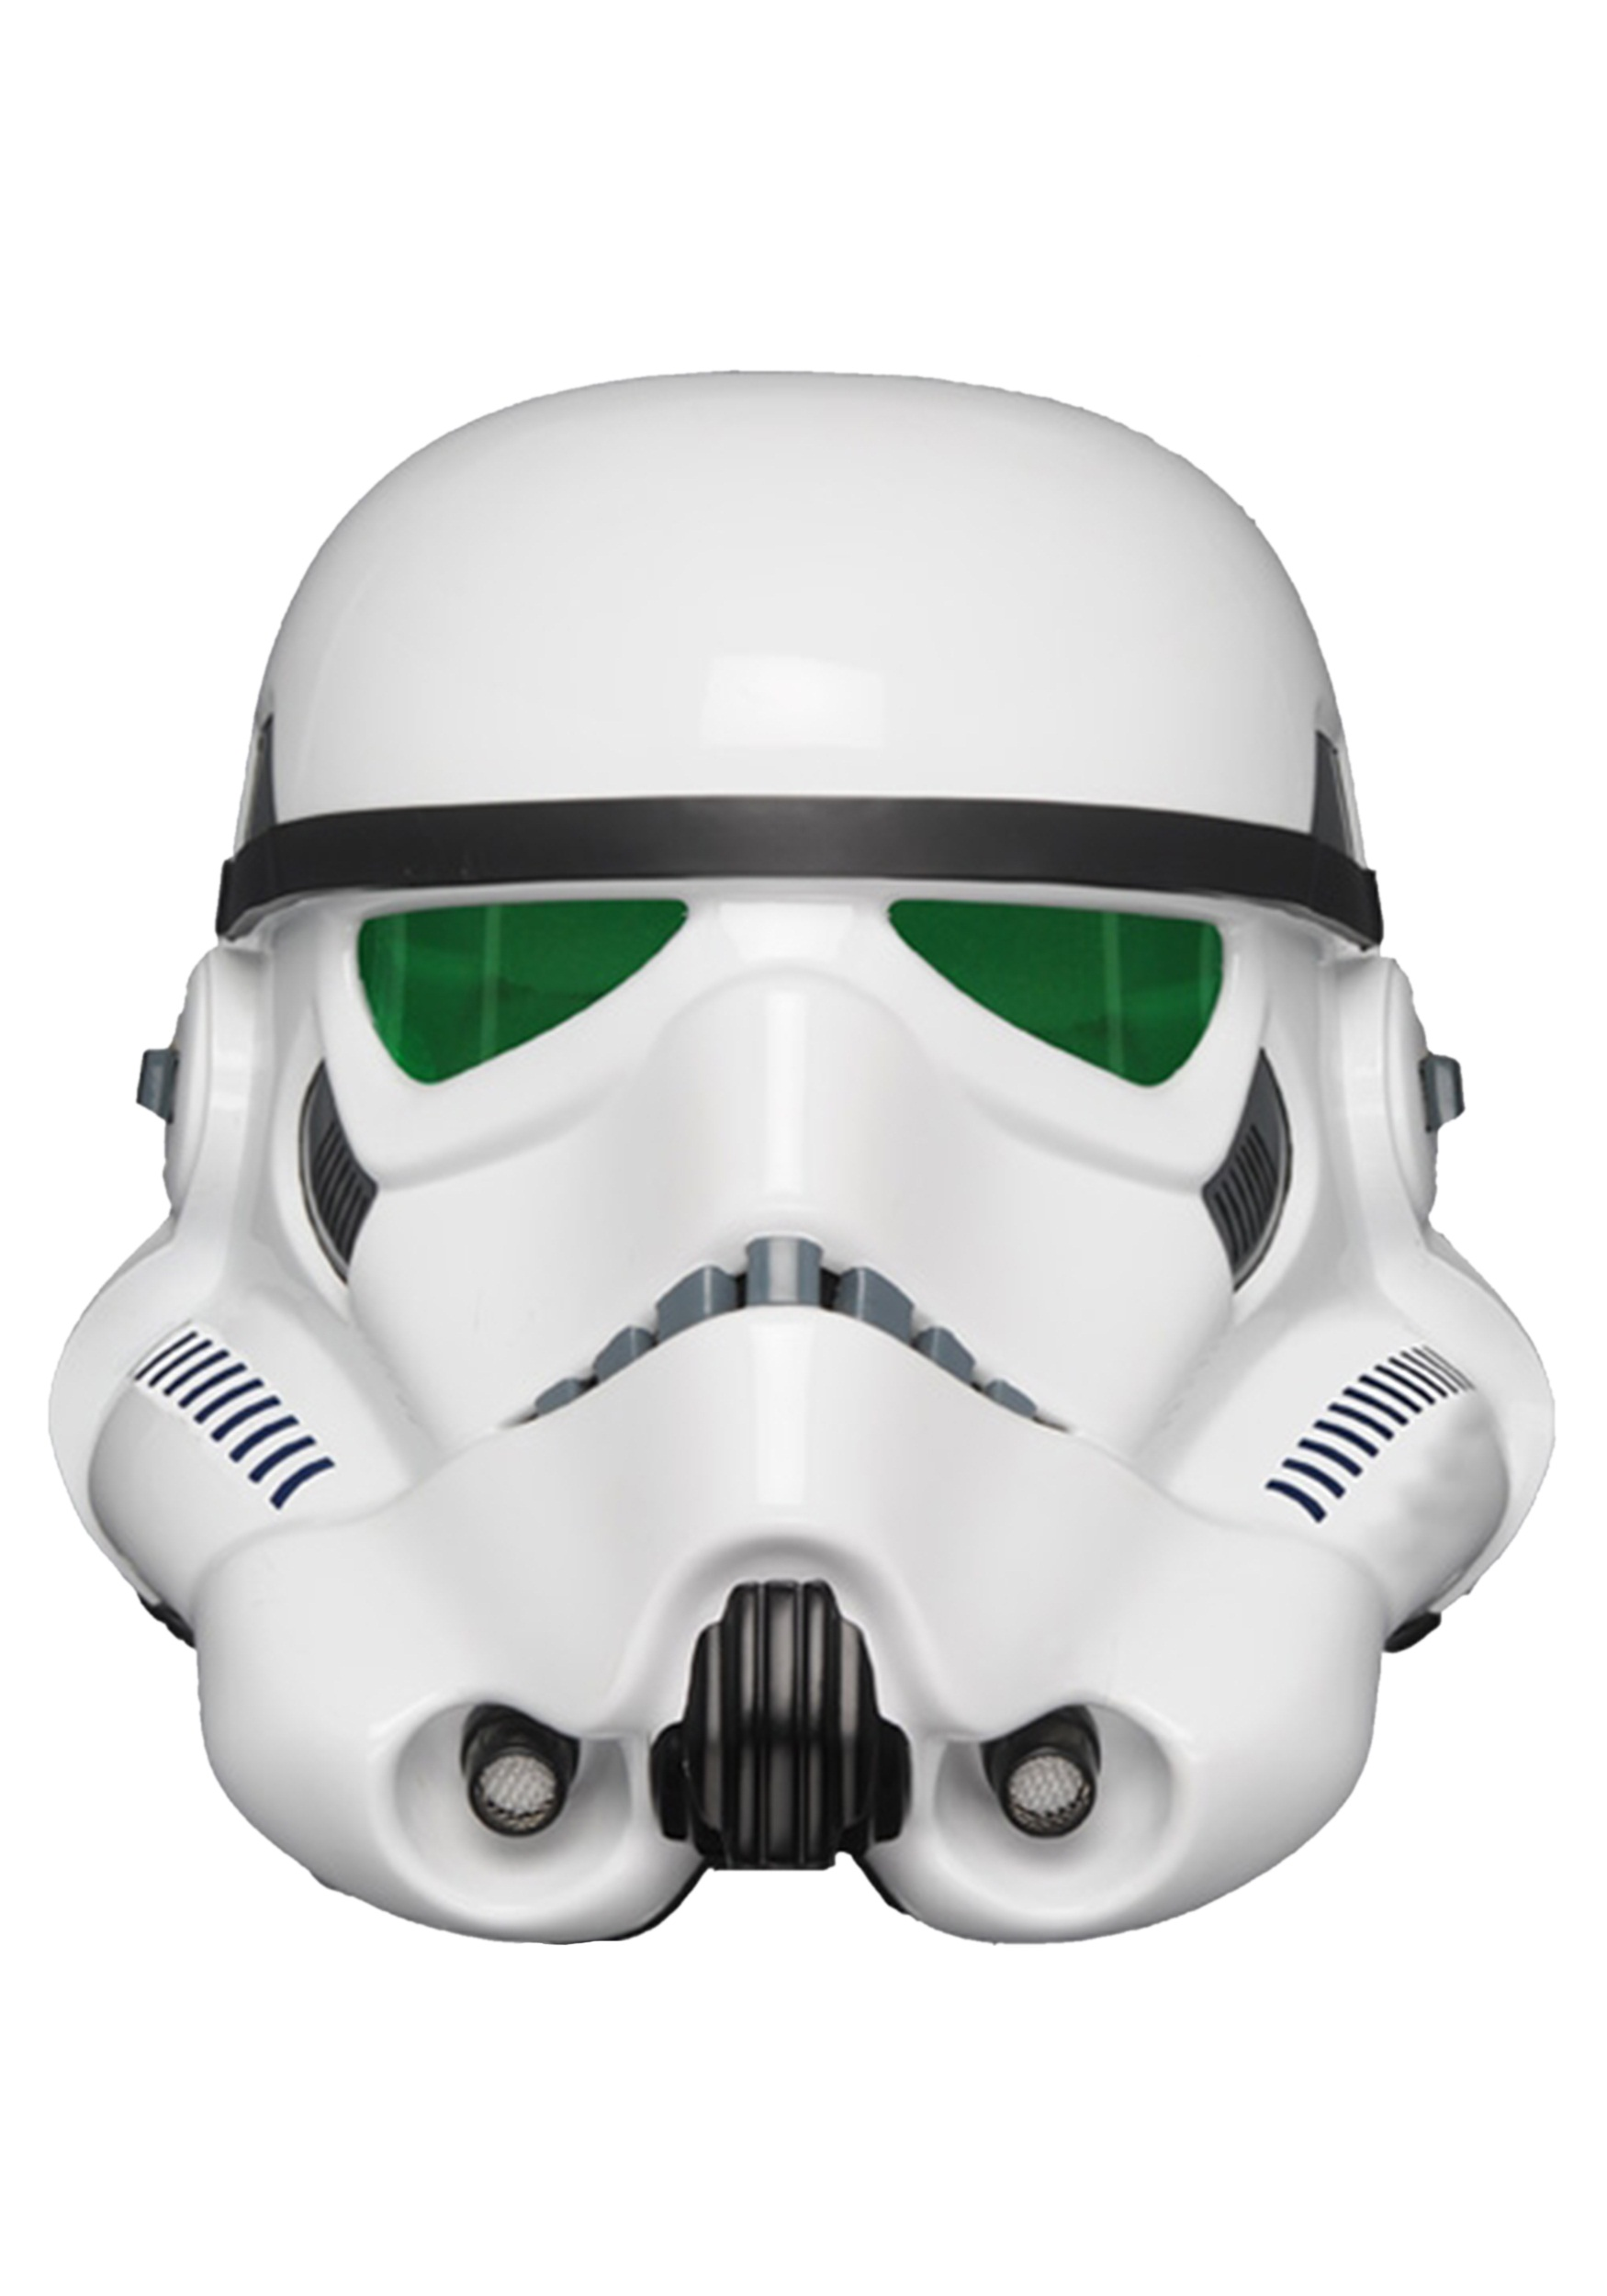 A New Hope Stormtrooper Replica Helmet